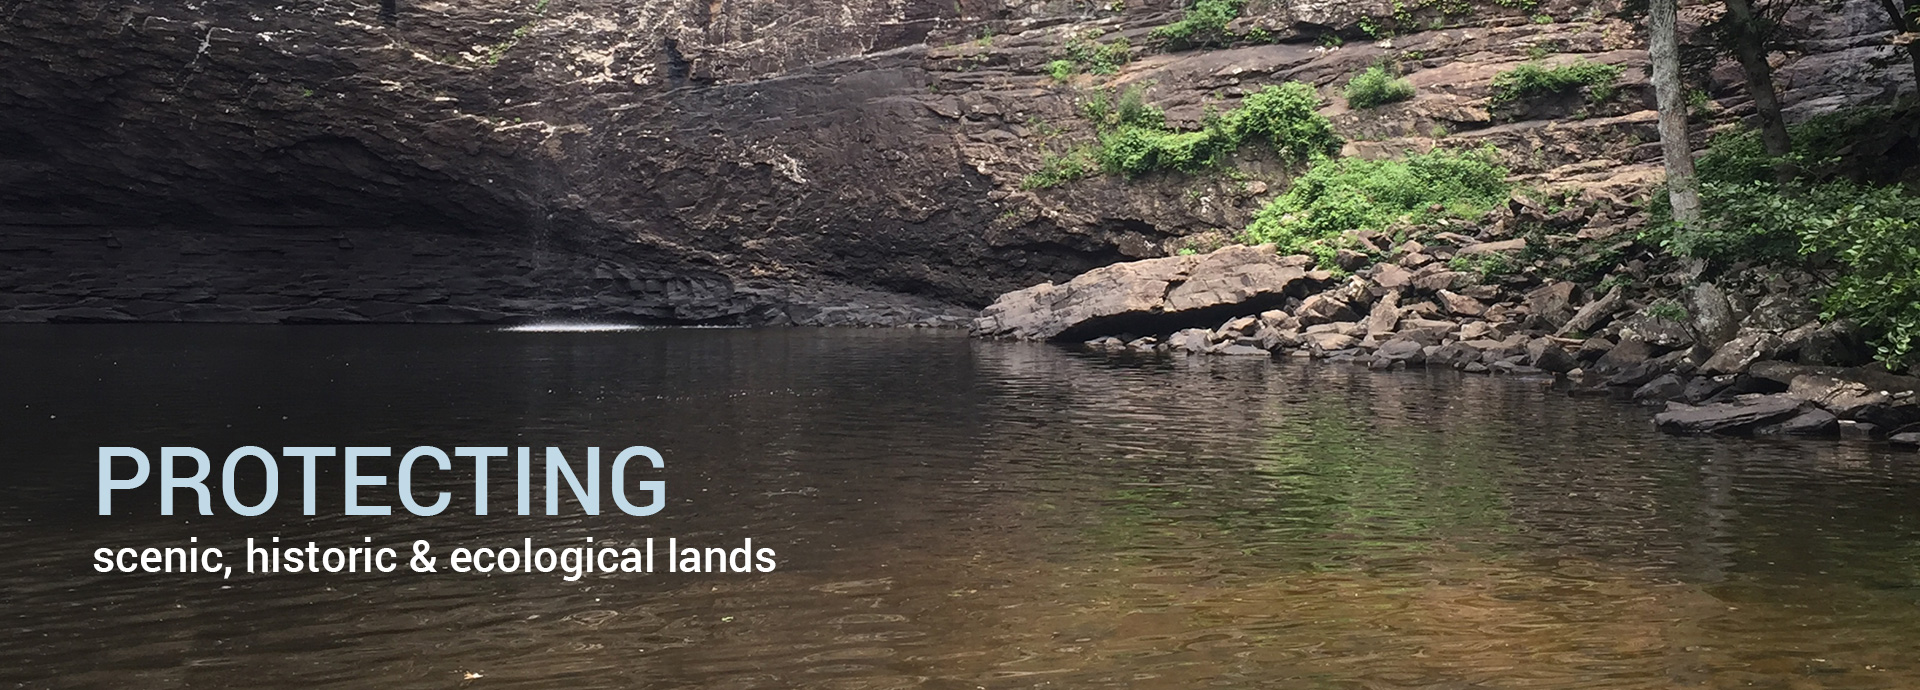 protecting scenic, historic & ecological lands